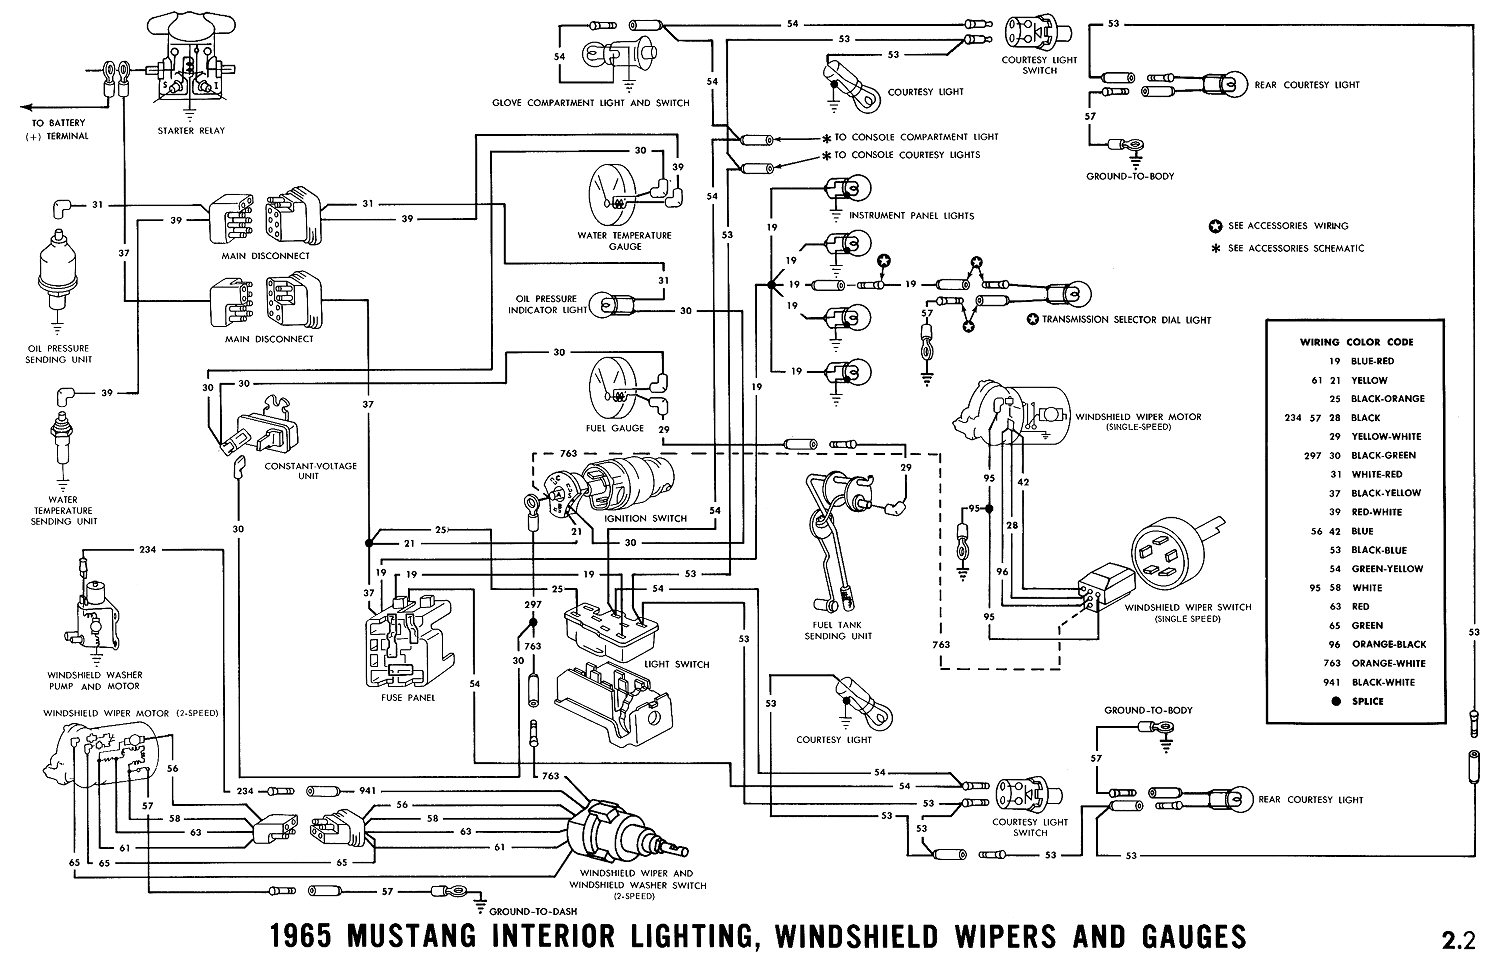 1958 Corvette Wiring Diagram Temp Library Dash 1965 Mustang Headlight Schematic Reinvent Your Rh Gearway Co Harness 58